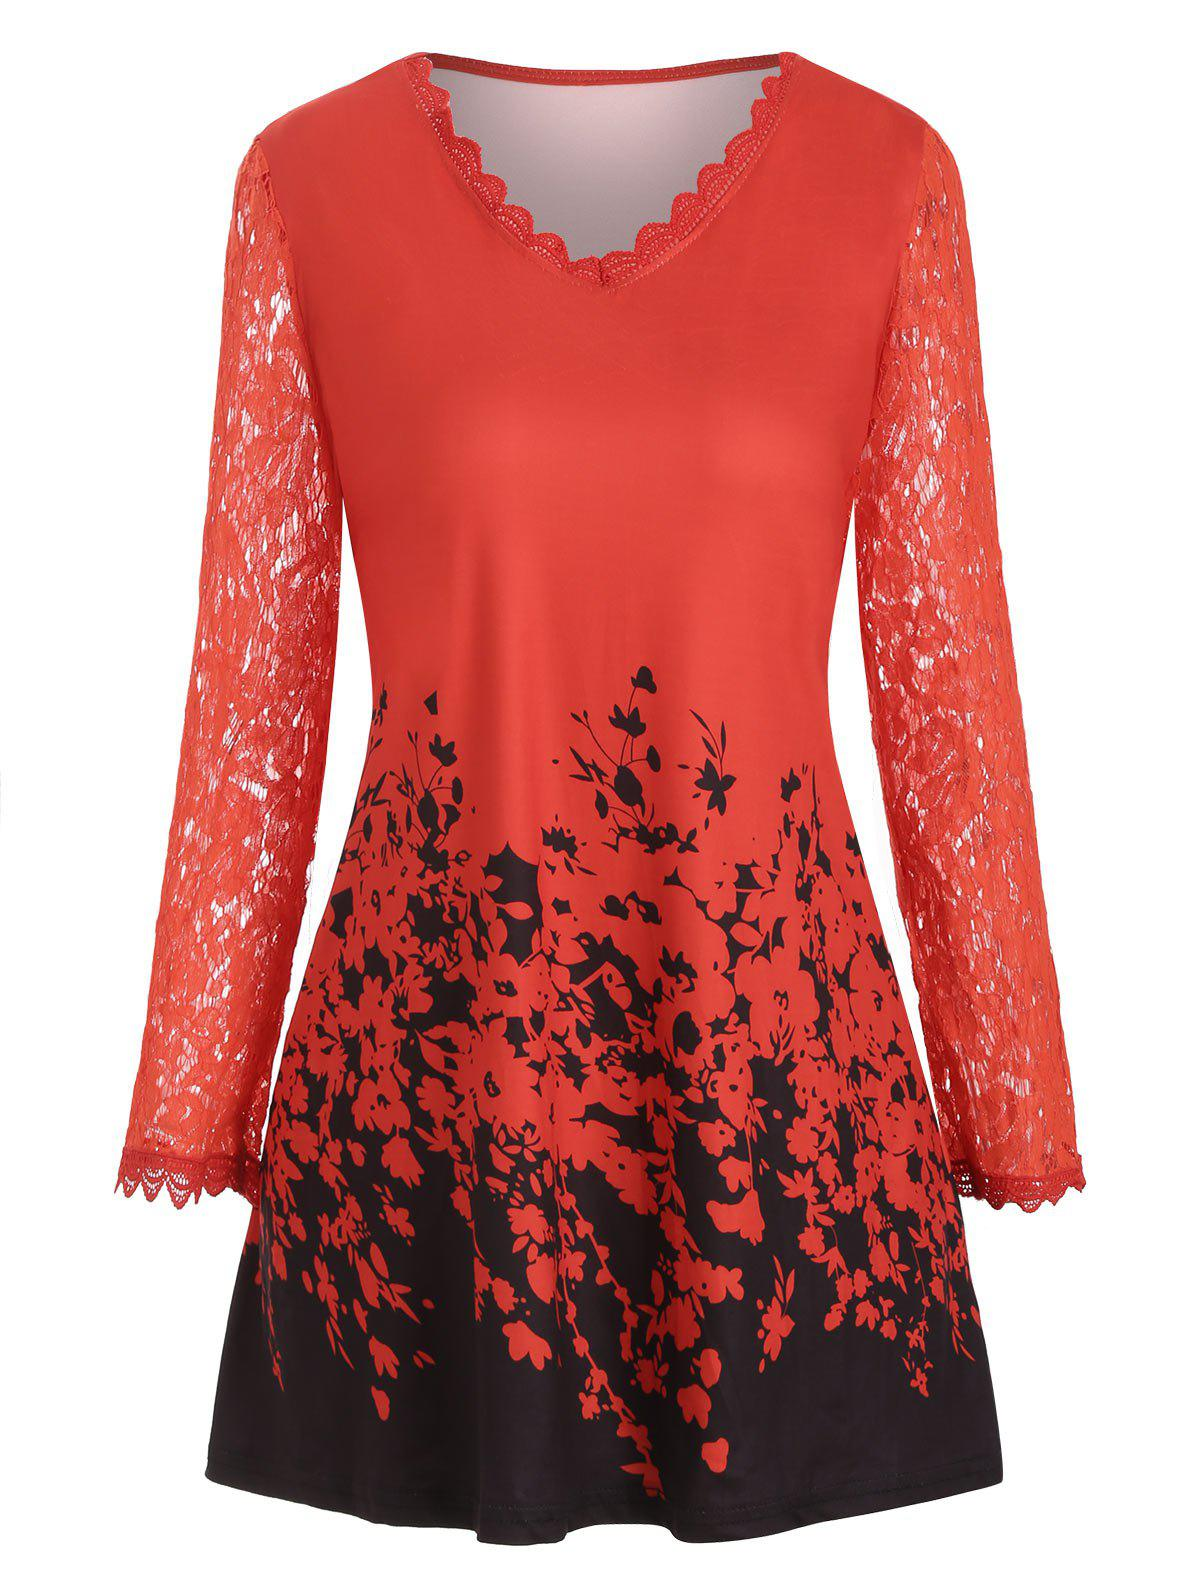 Plus Size Lace Sleeve Printed T Shirt - RED L